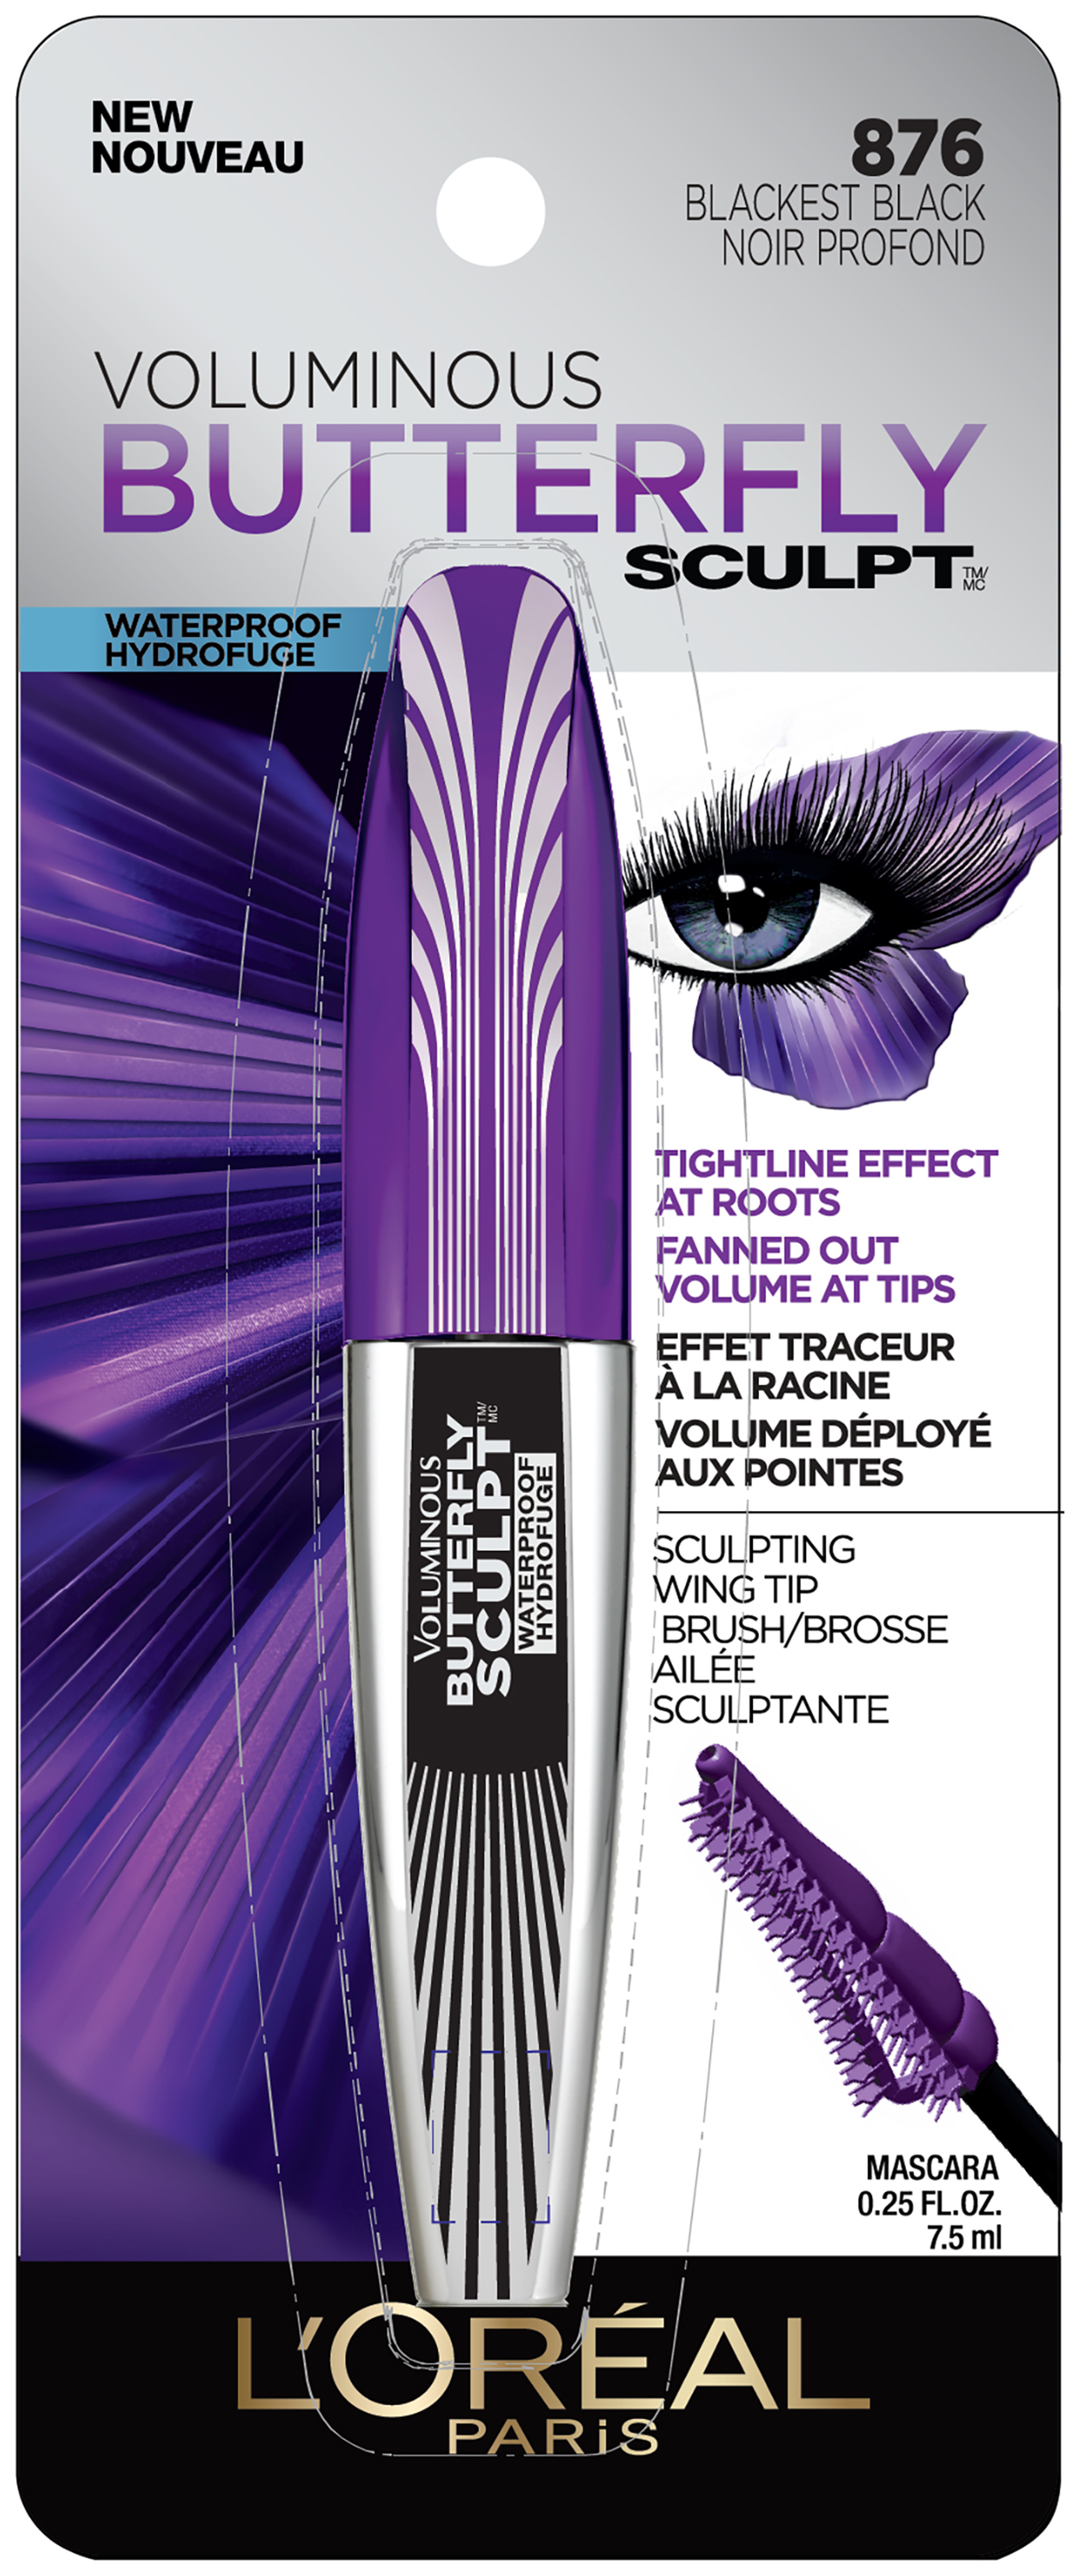 L'Oréal Paris Voluminous Butterfly Sculpt™ Waterproof Mascara 876 Blackest Black 0.25 fl. oz. Carded Pack